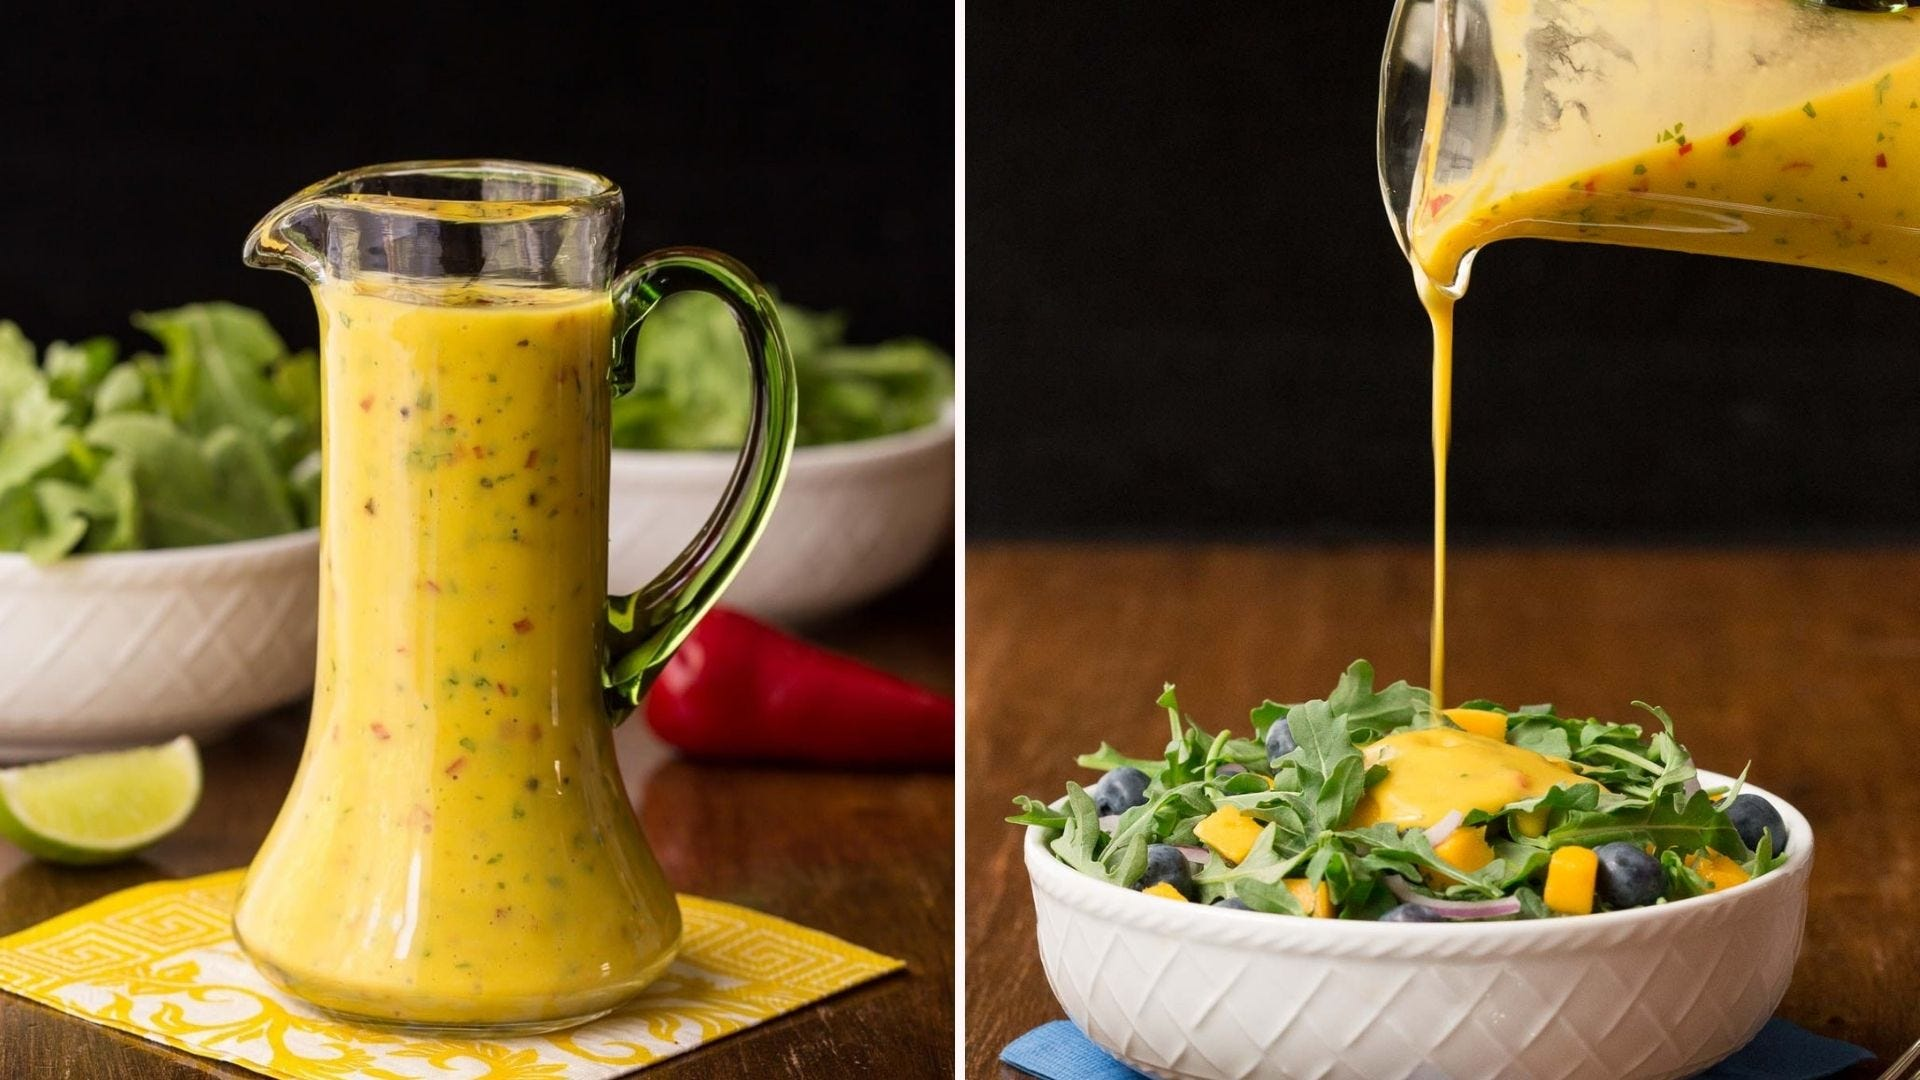 A dressing pourer full of mango salad dressing and some being poured on a salad.